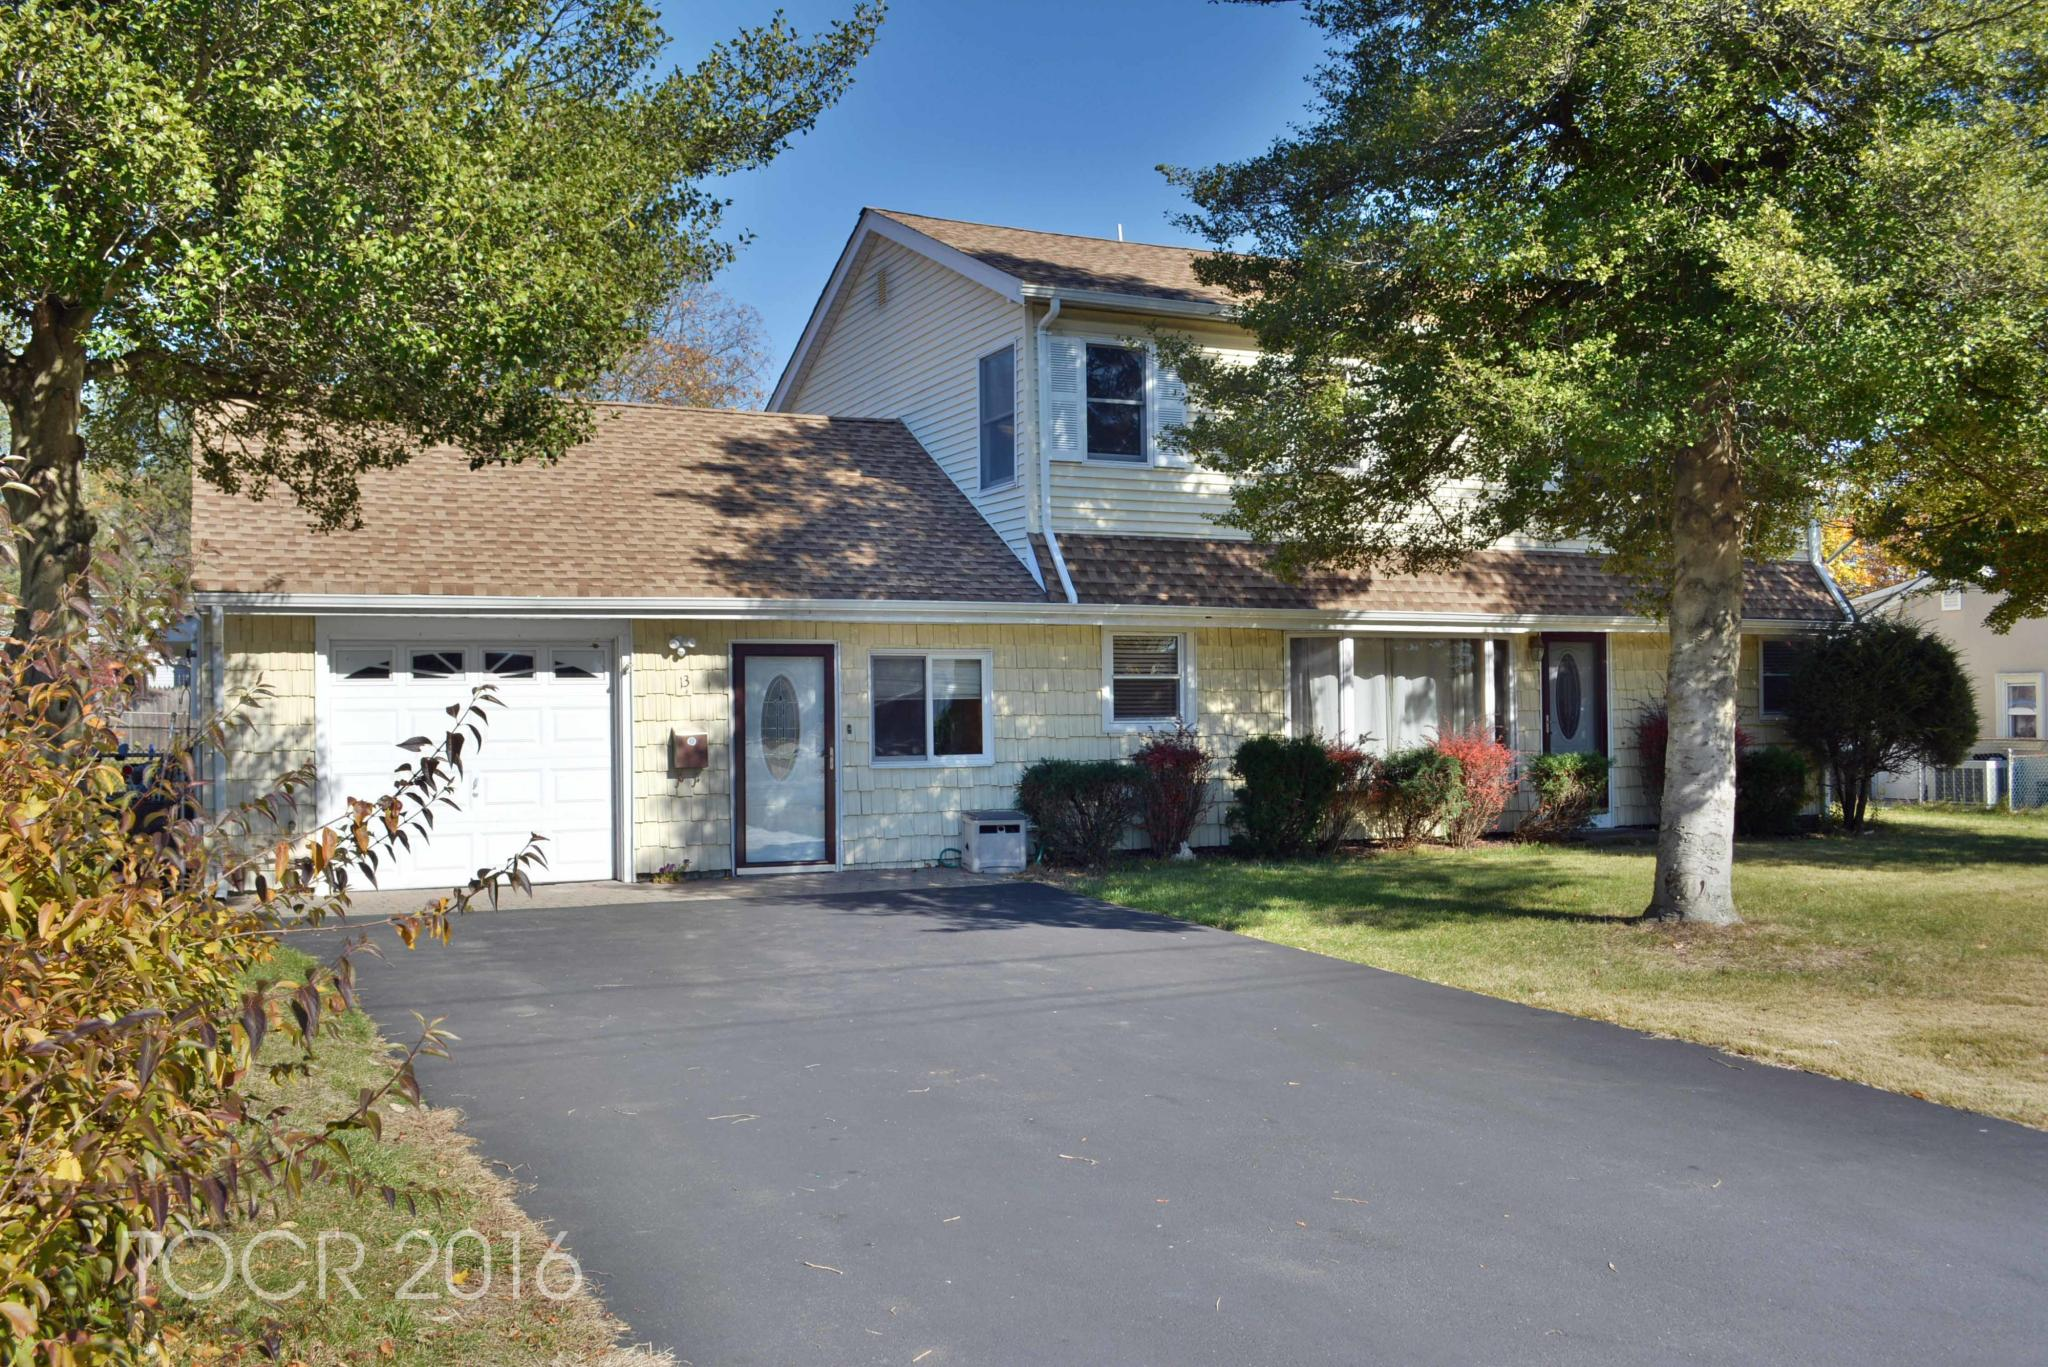 13 stuart ln, wayne, nj 07470 - estimate and home details | trulia